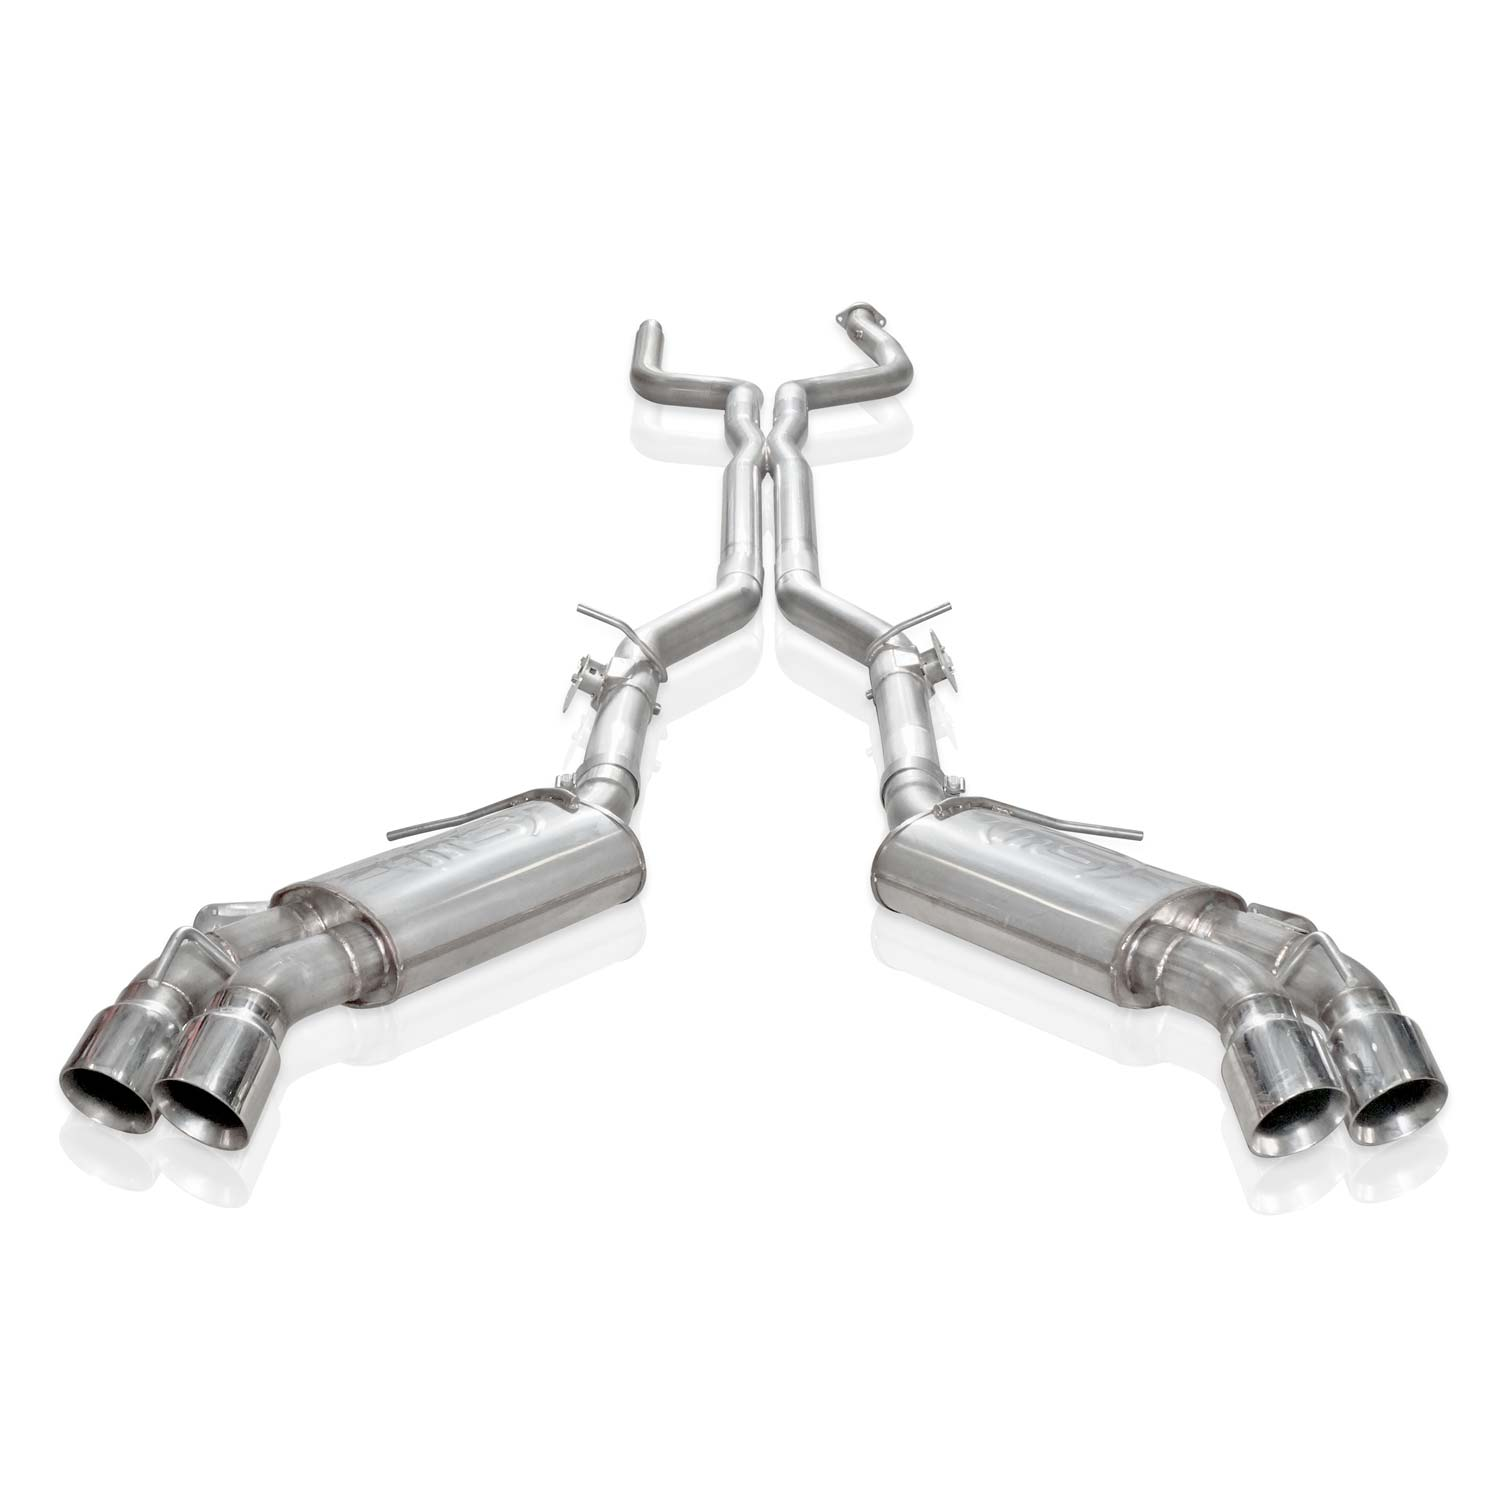 Camaro Ss Stainless Works Exhaust Catback W Afm Valves And